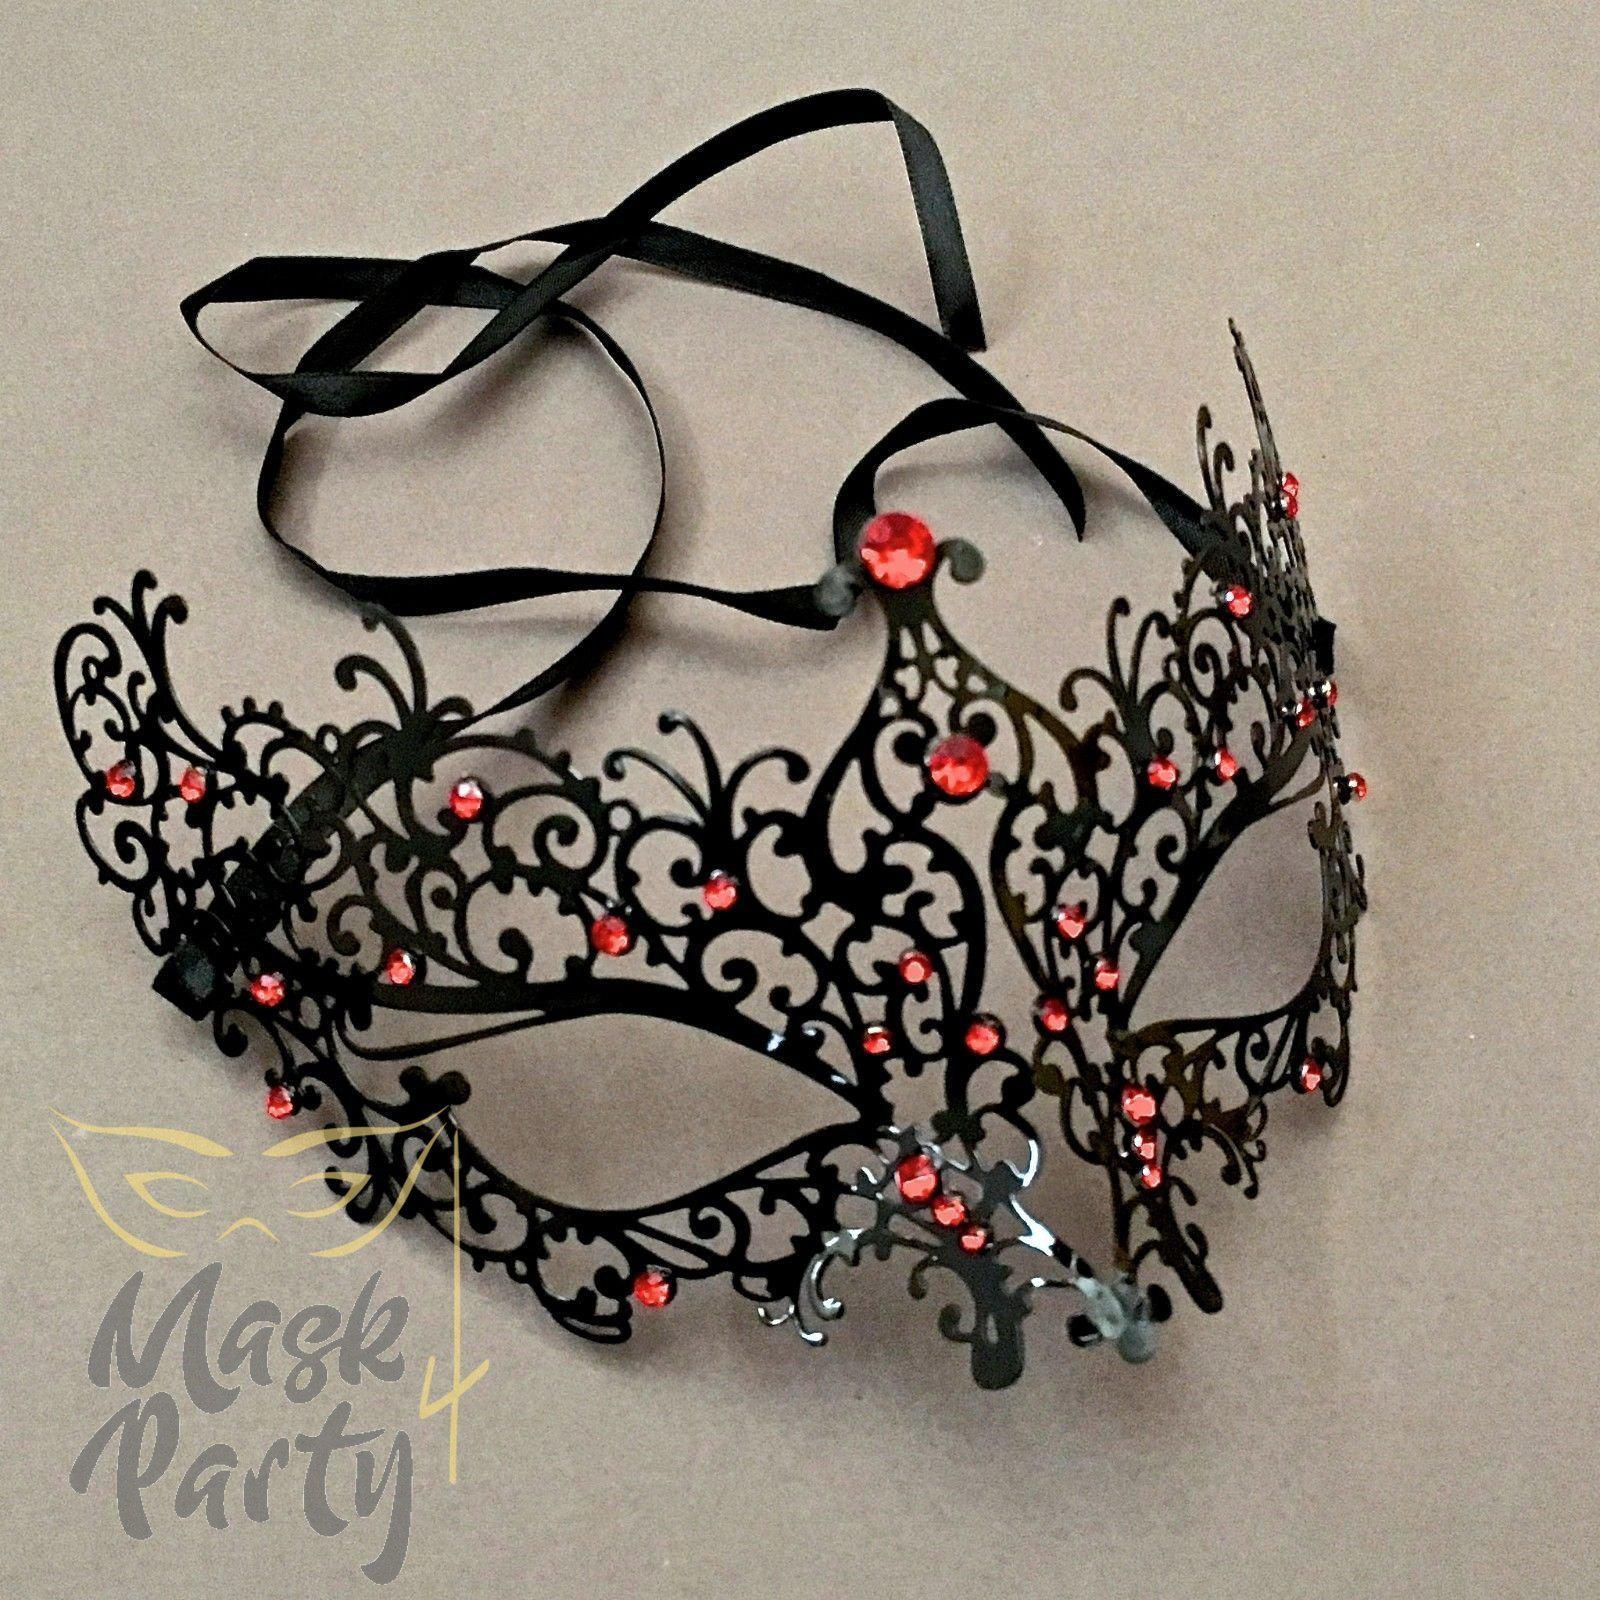 Masquerade Mask - Filigree Metal Eye - Black w/ Red Rhinestones - Mask4Party